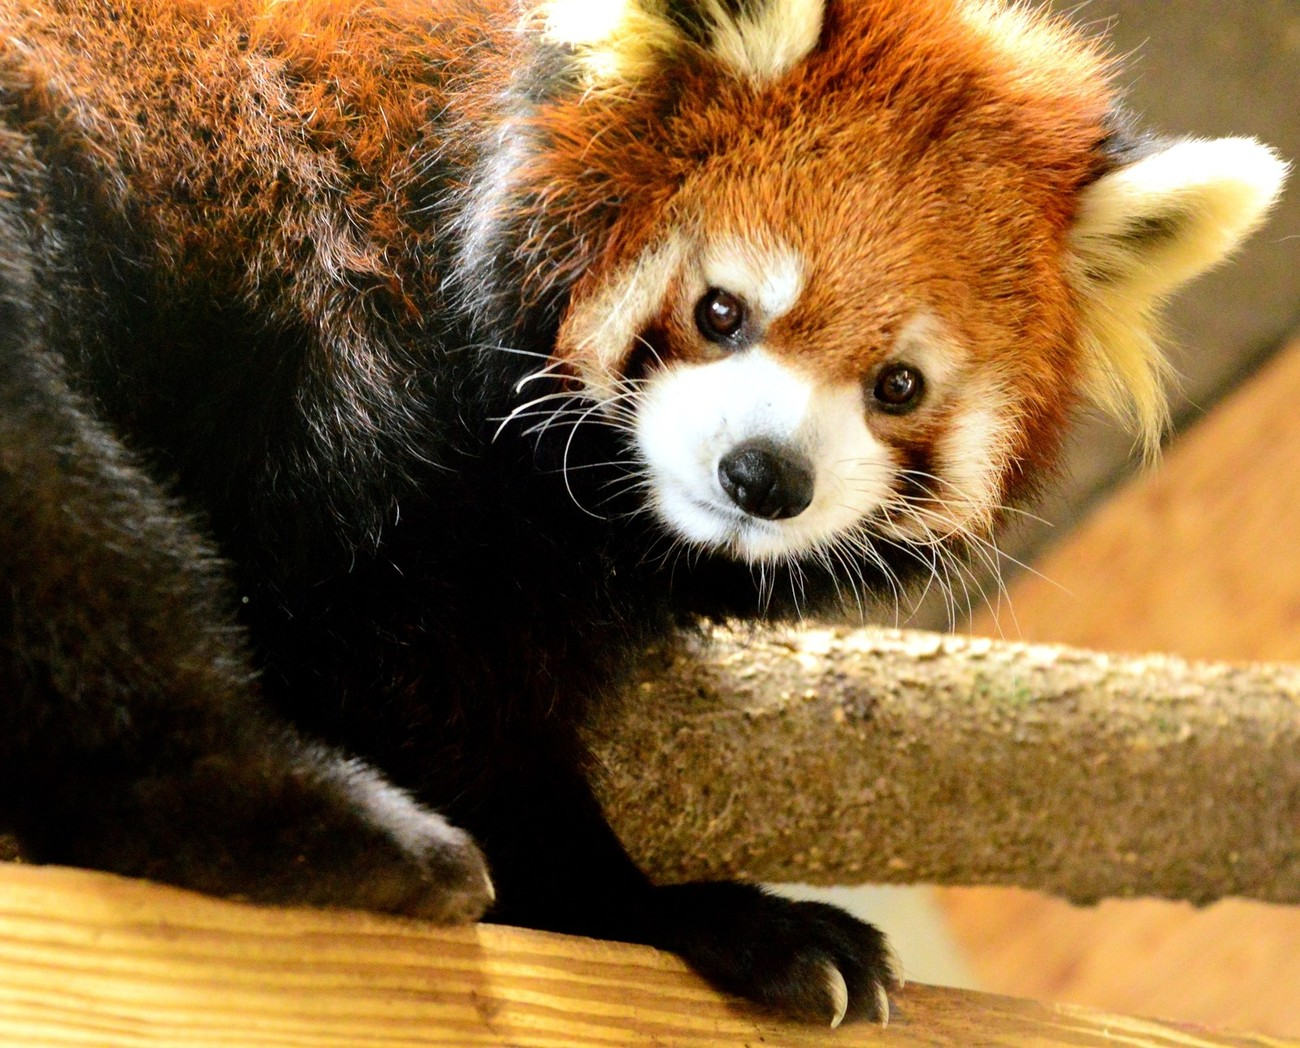 Lovely Red Panda. They may seem sweet but if you don't give them their treat fast enough those claws are super sharp.